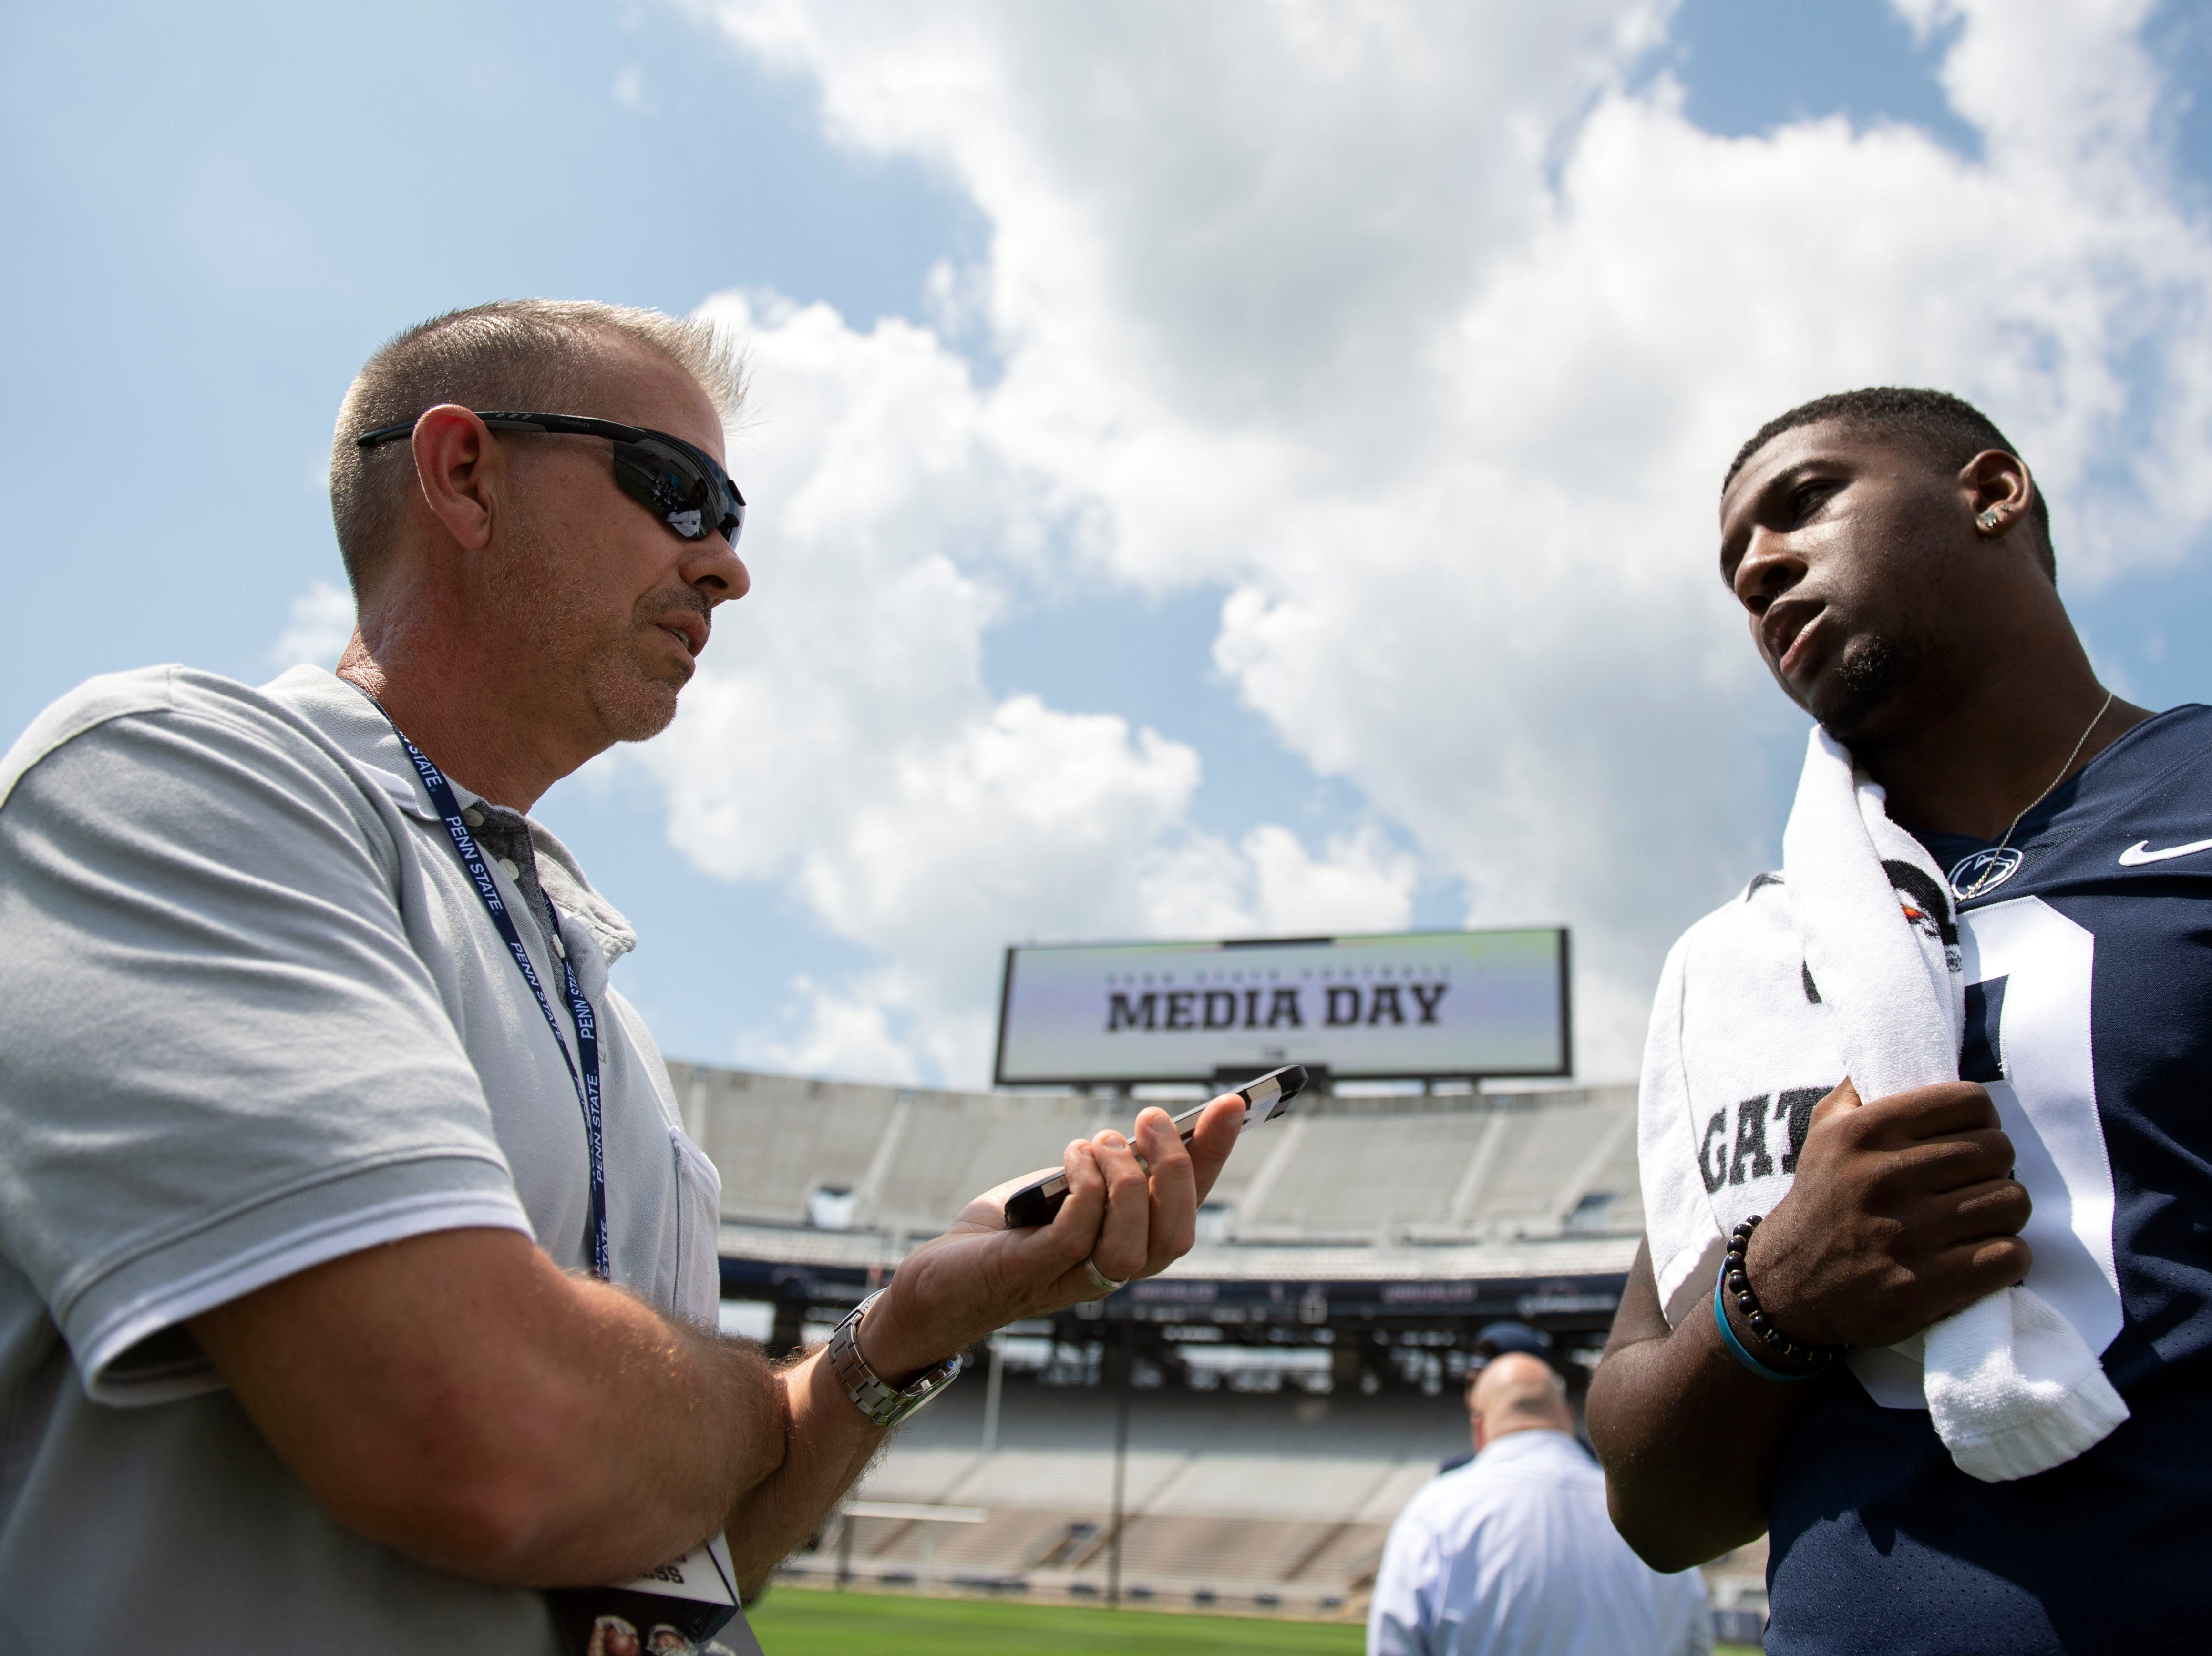 York Daily Record reporter Frank Bodani interviews line backer Jarvis Miller during media day at Beaver Stadium on Saturday, August 4, 2018.